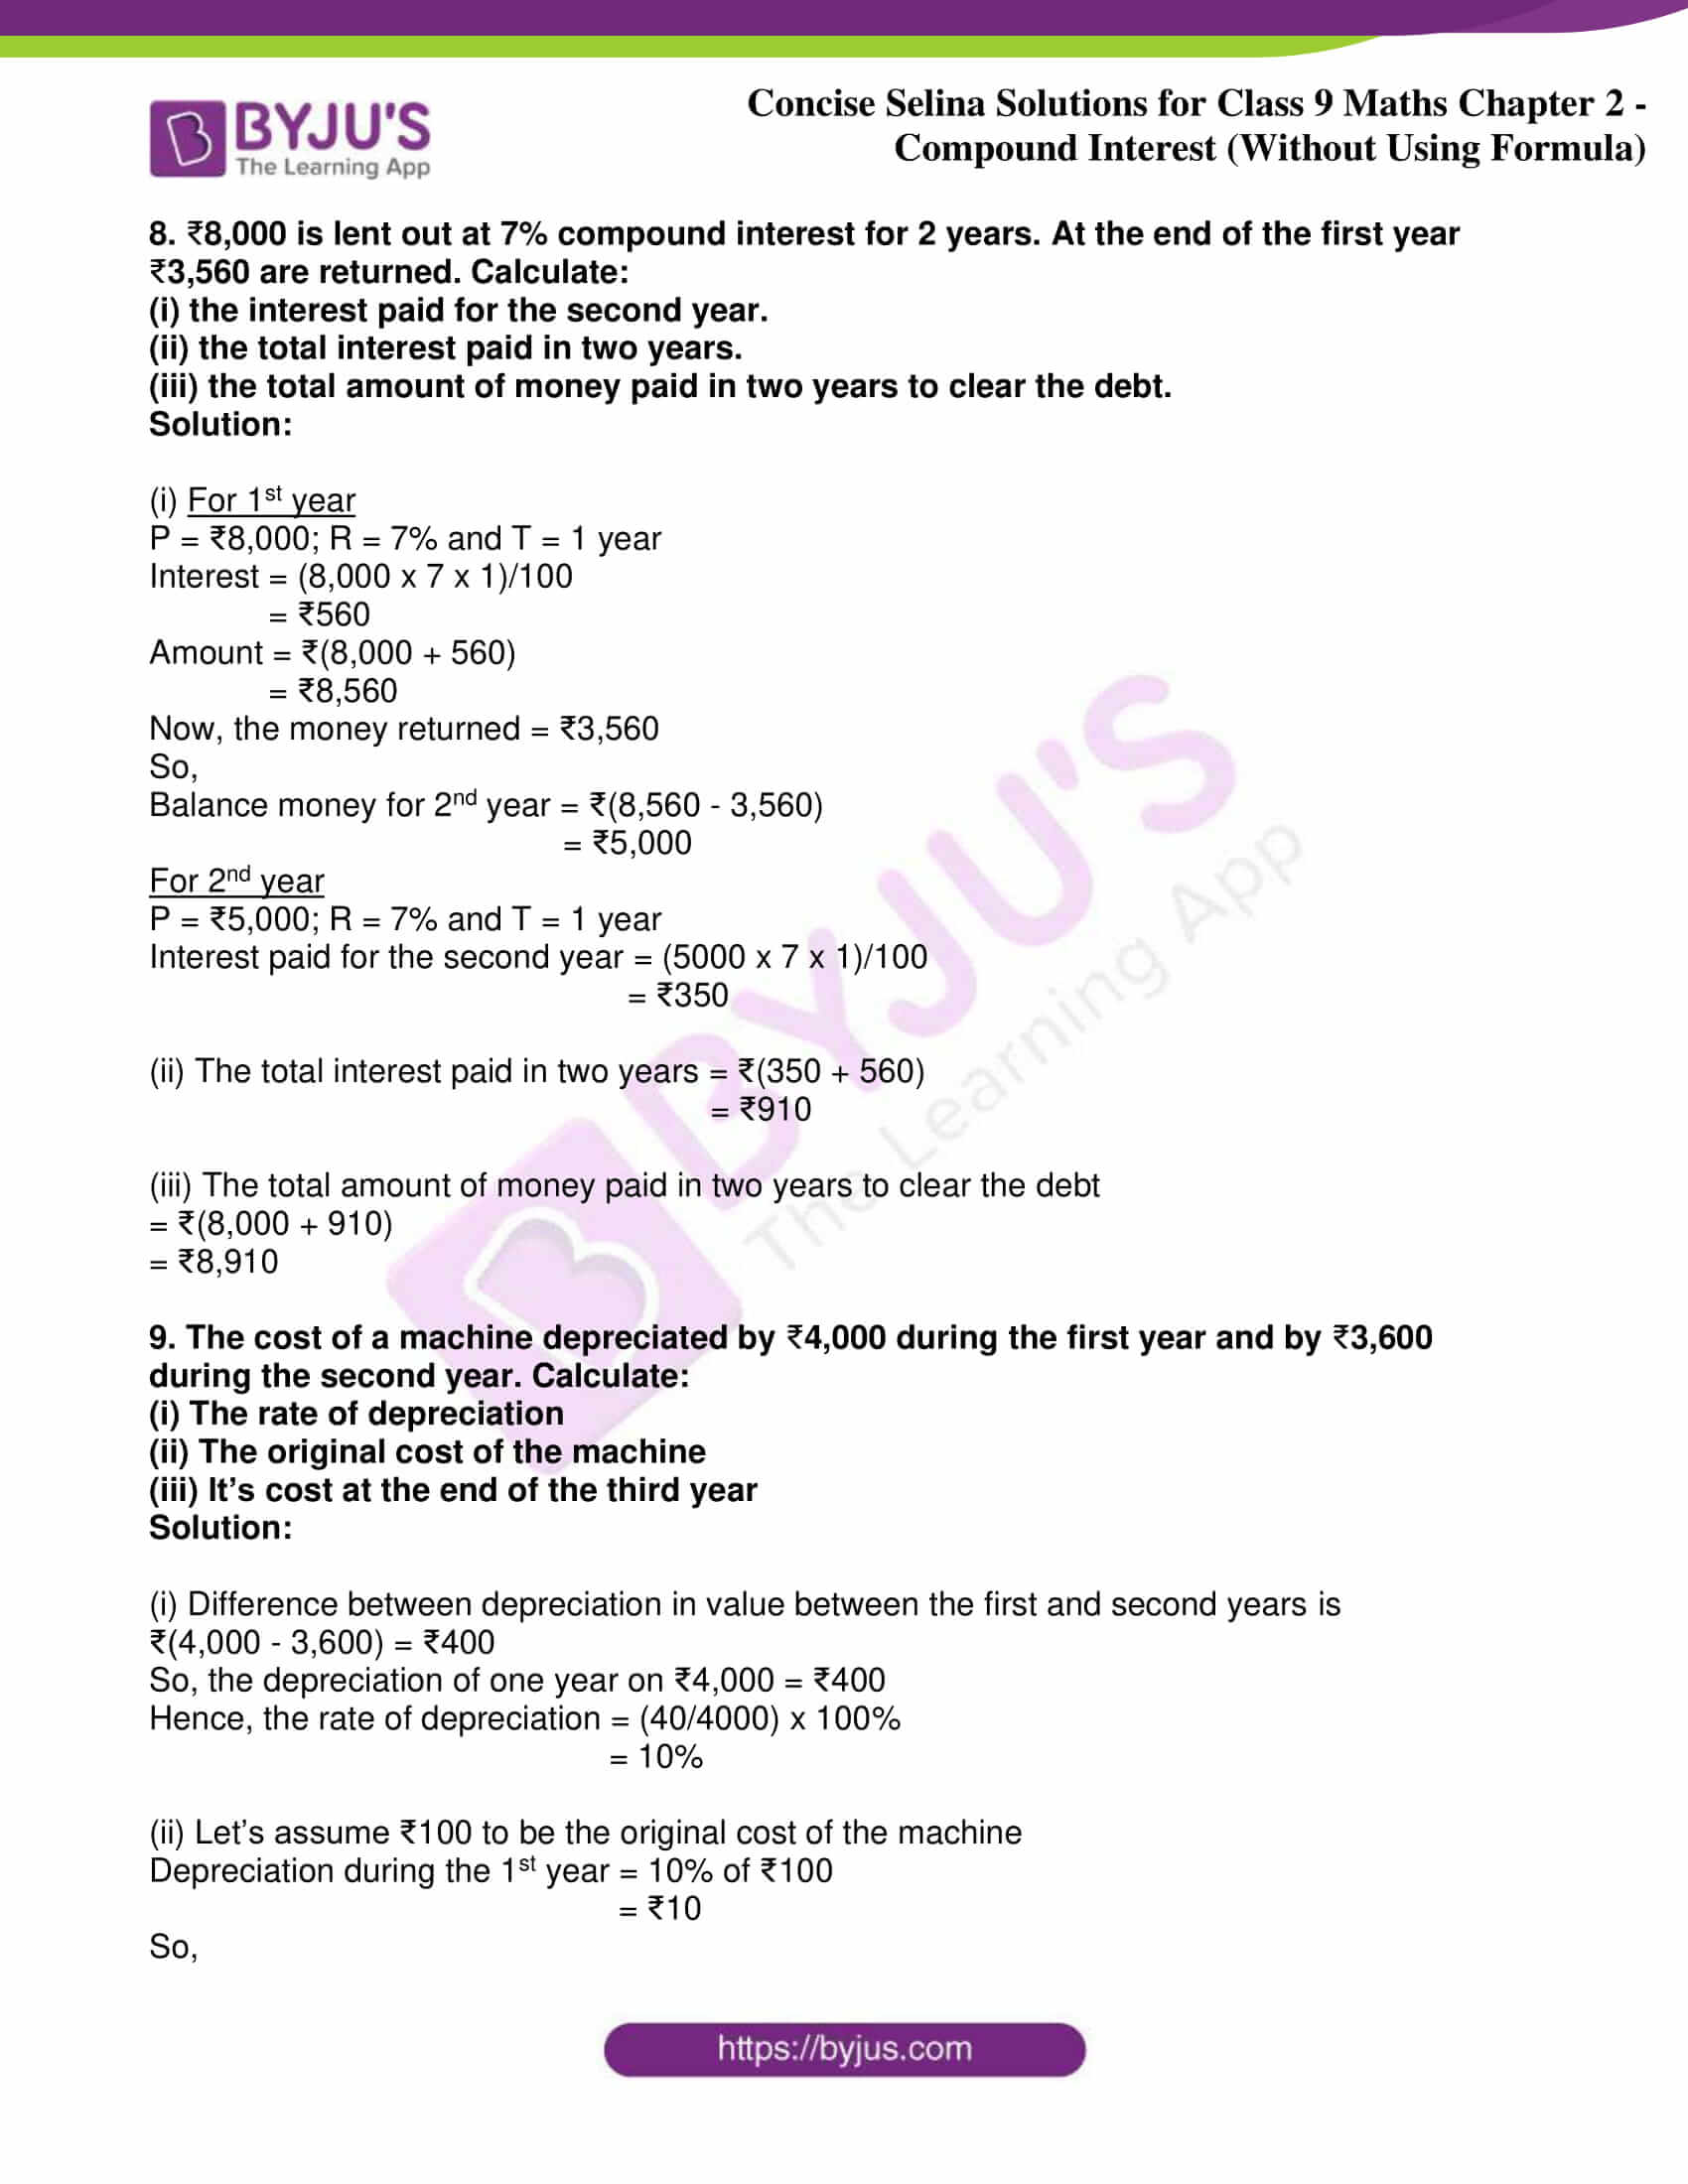 icse class 9 maths may10 selina solutions chapter 2 compound interest without using formula 19